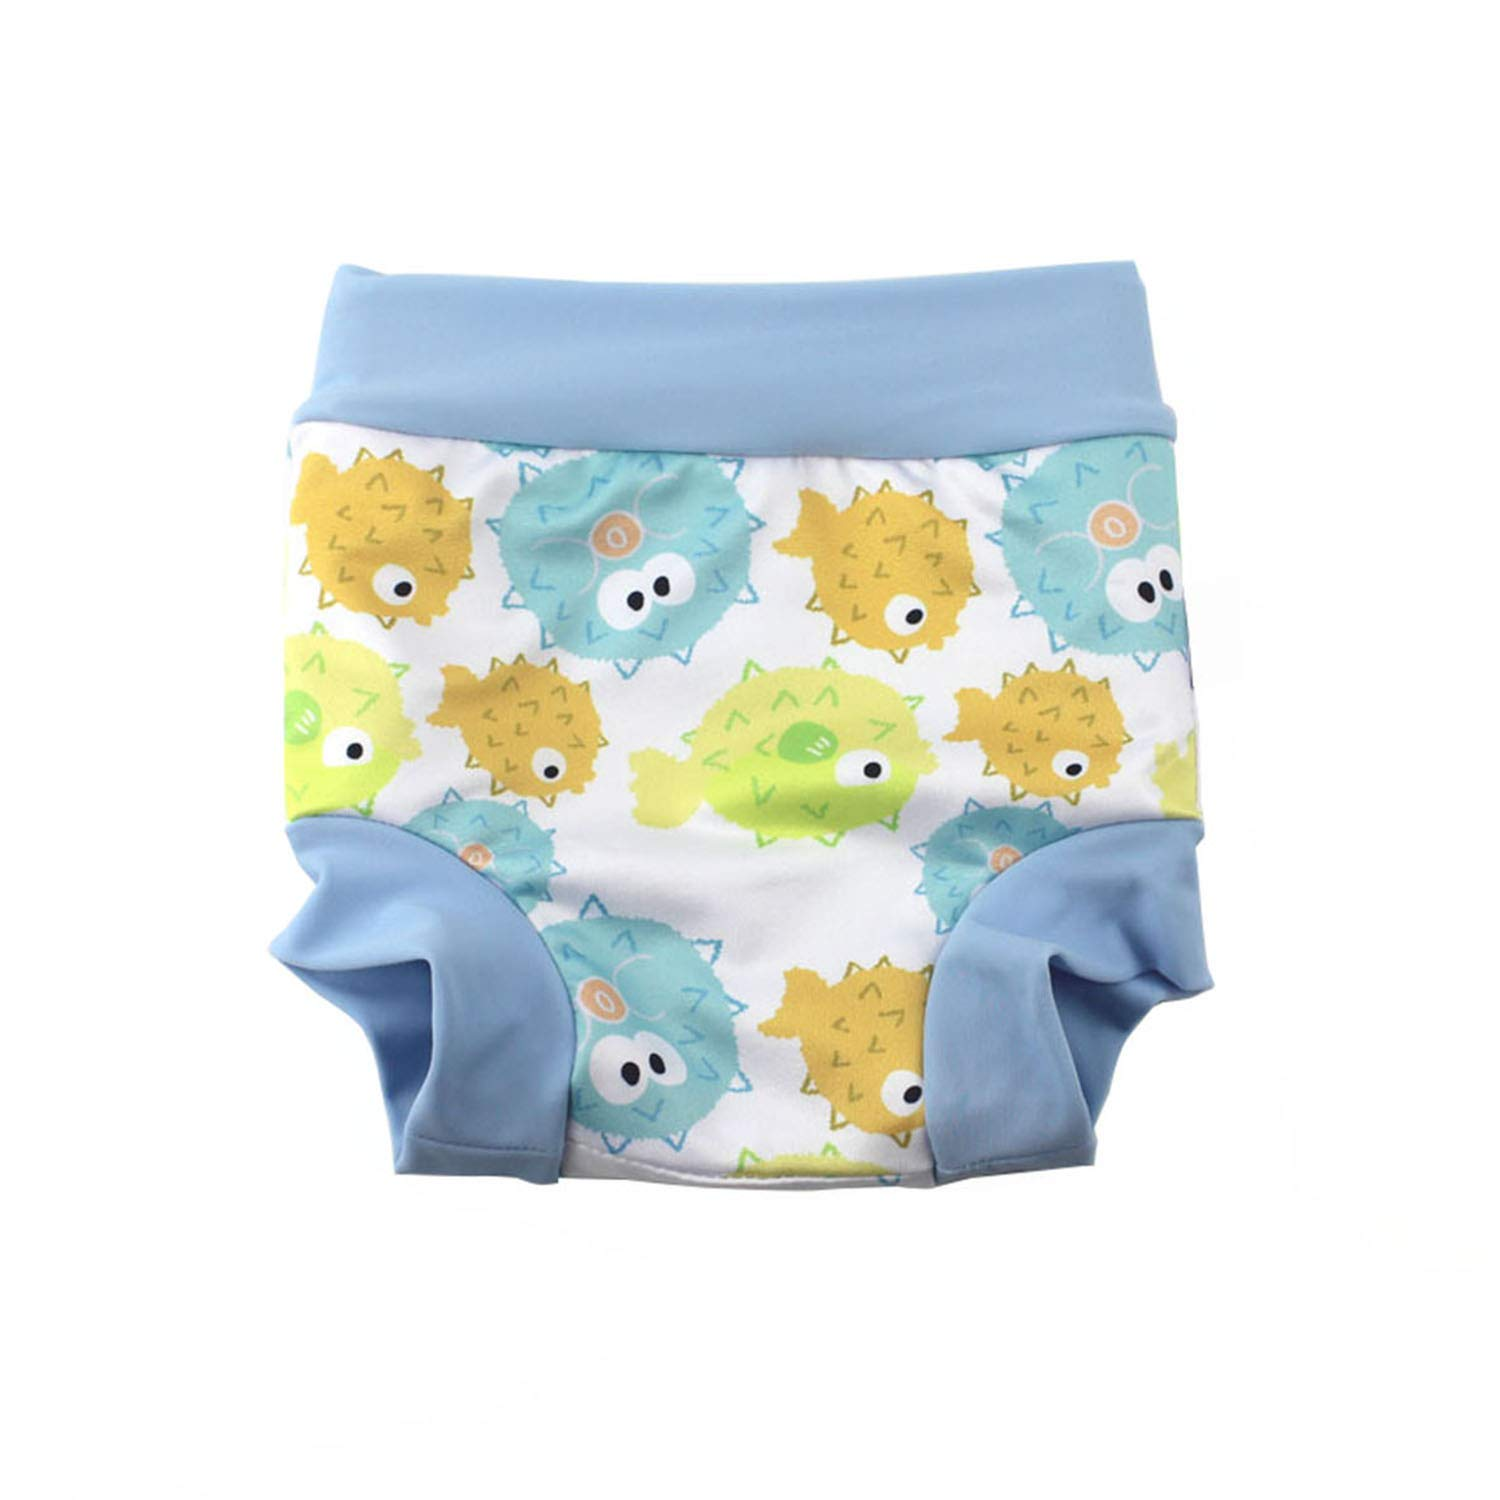 BabyPreg Baby Kids Swim Nappies Cover Happy Nappy High-Waisted Belly Protection Swimming Shorts Green, L// 2-3 Years